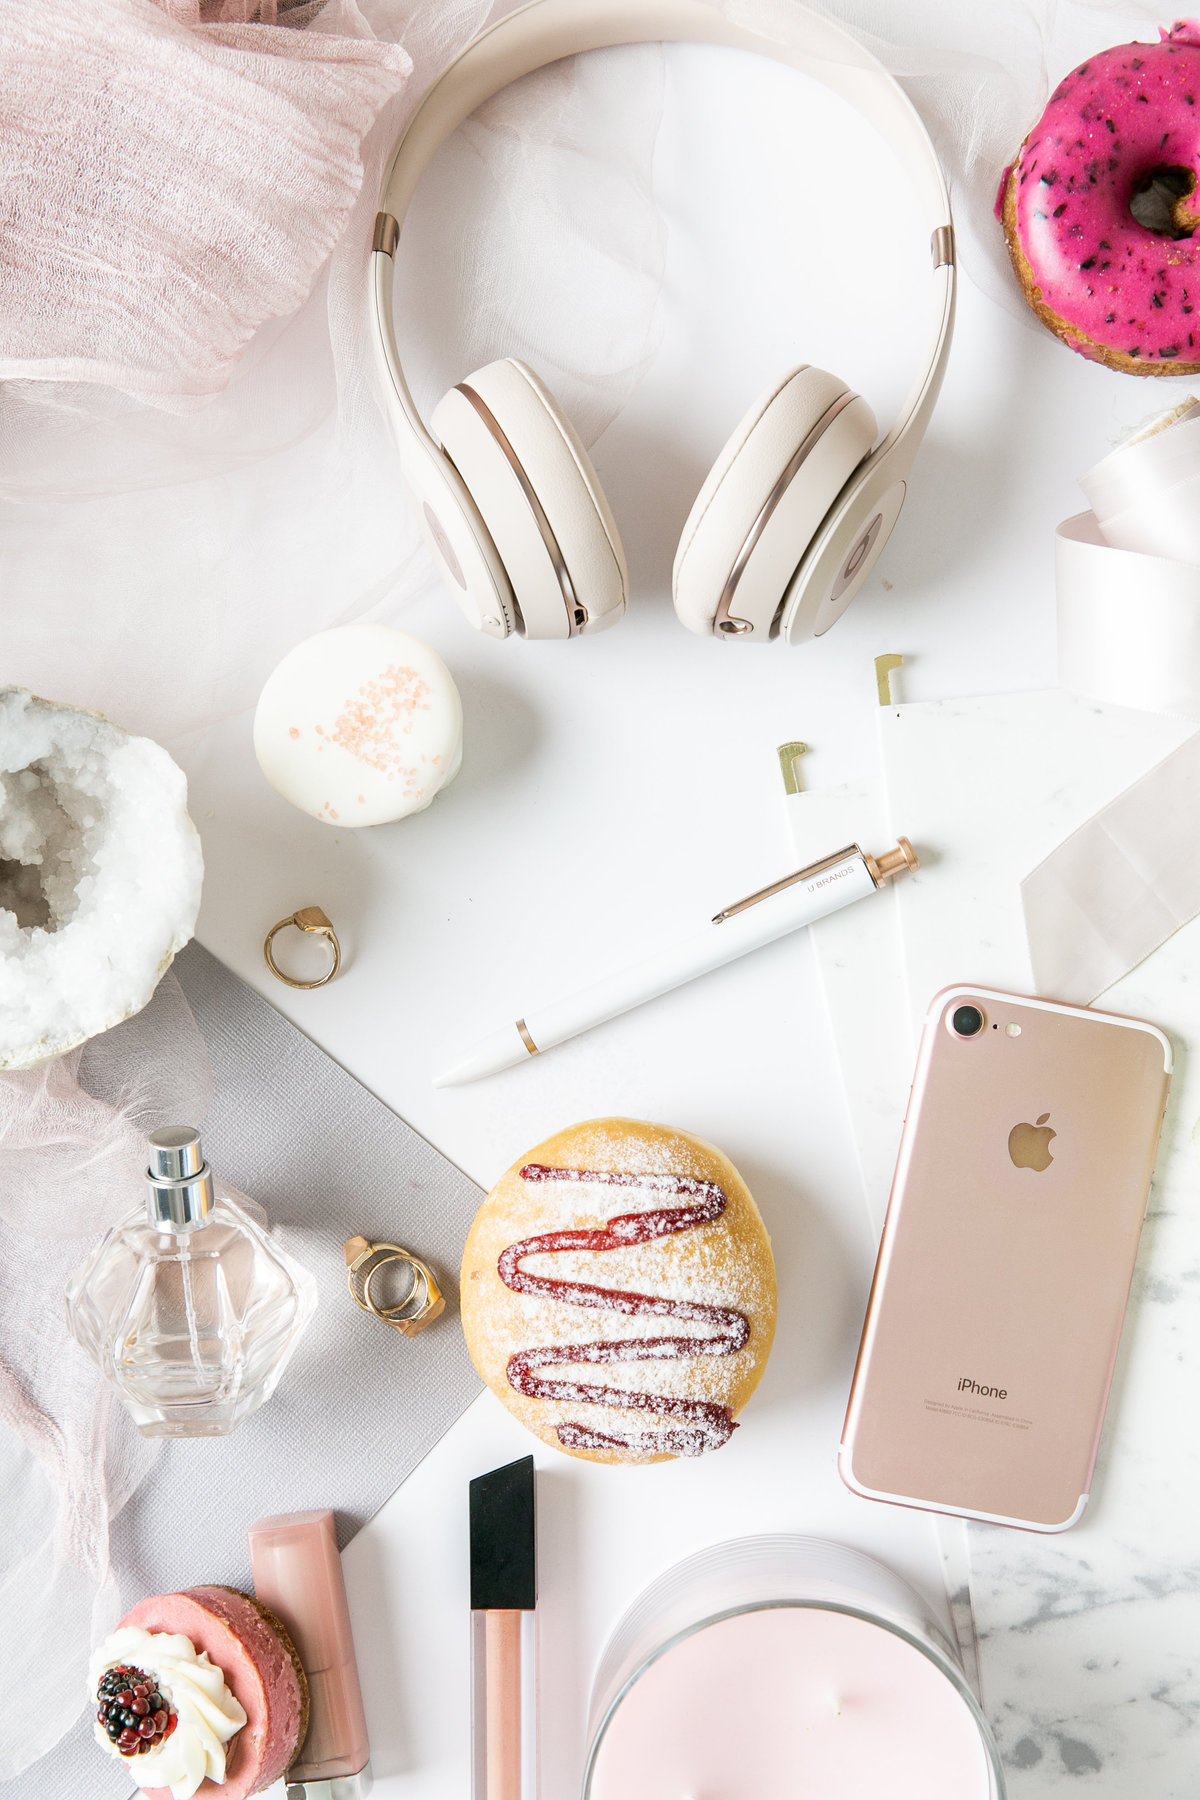 Karlie Colleen Photography - All Things OutSourcing- Flatlay photos-198